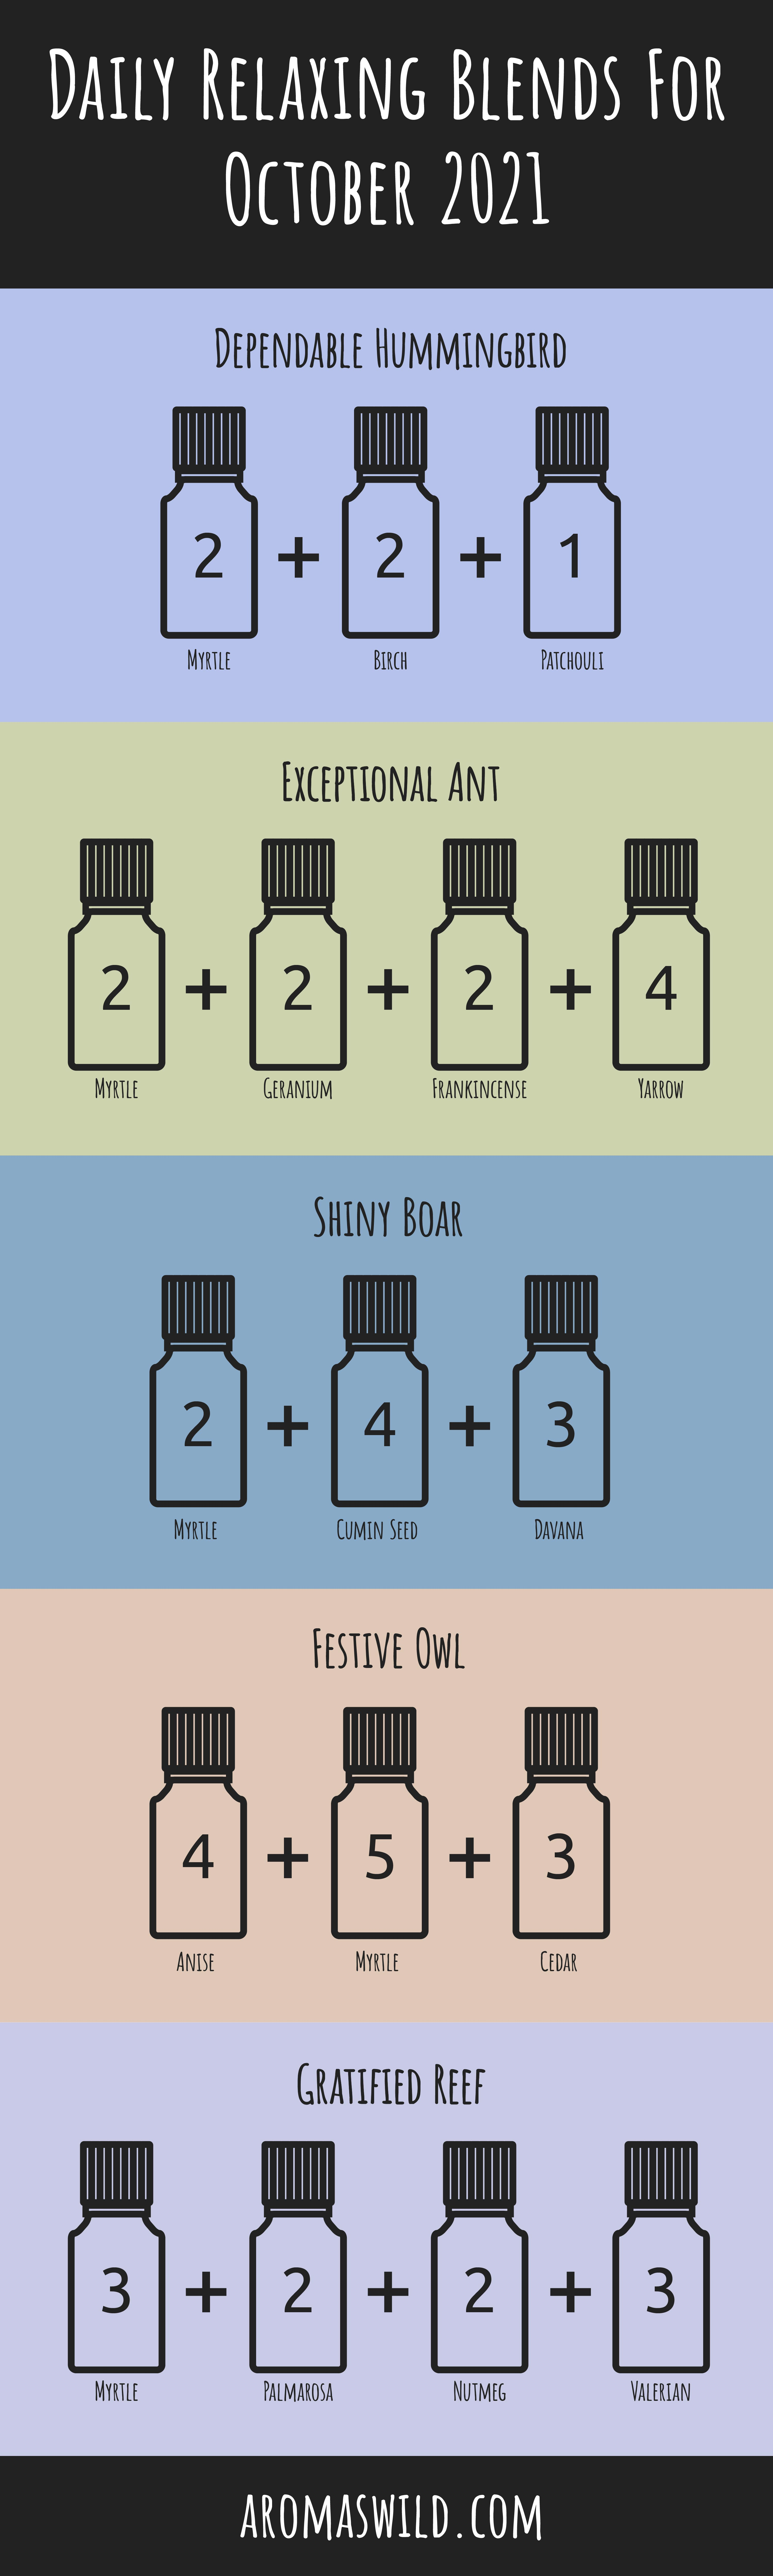 best essential oils for stress relief – Daily Relaxing Blends For 16 October 2021